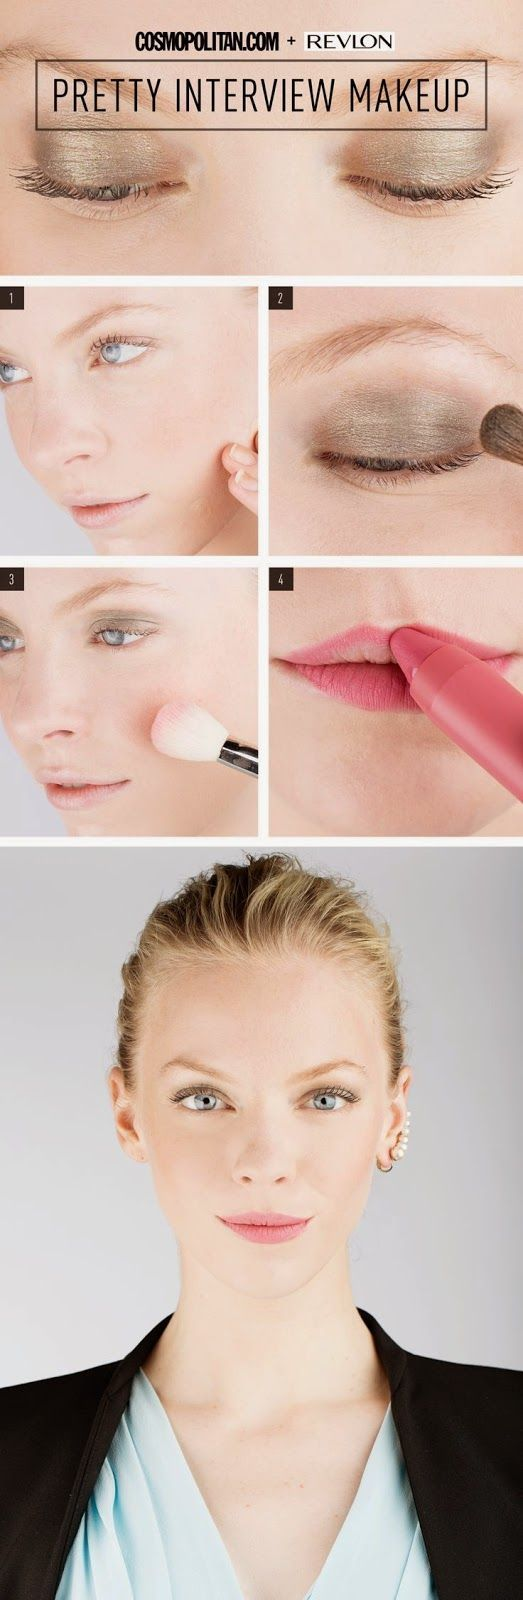 Makeup how to create the perfect interview look interview makeup tips tutorials picture description pretty interview makeup baditri Choice Image